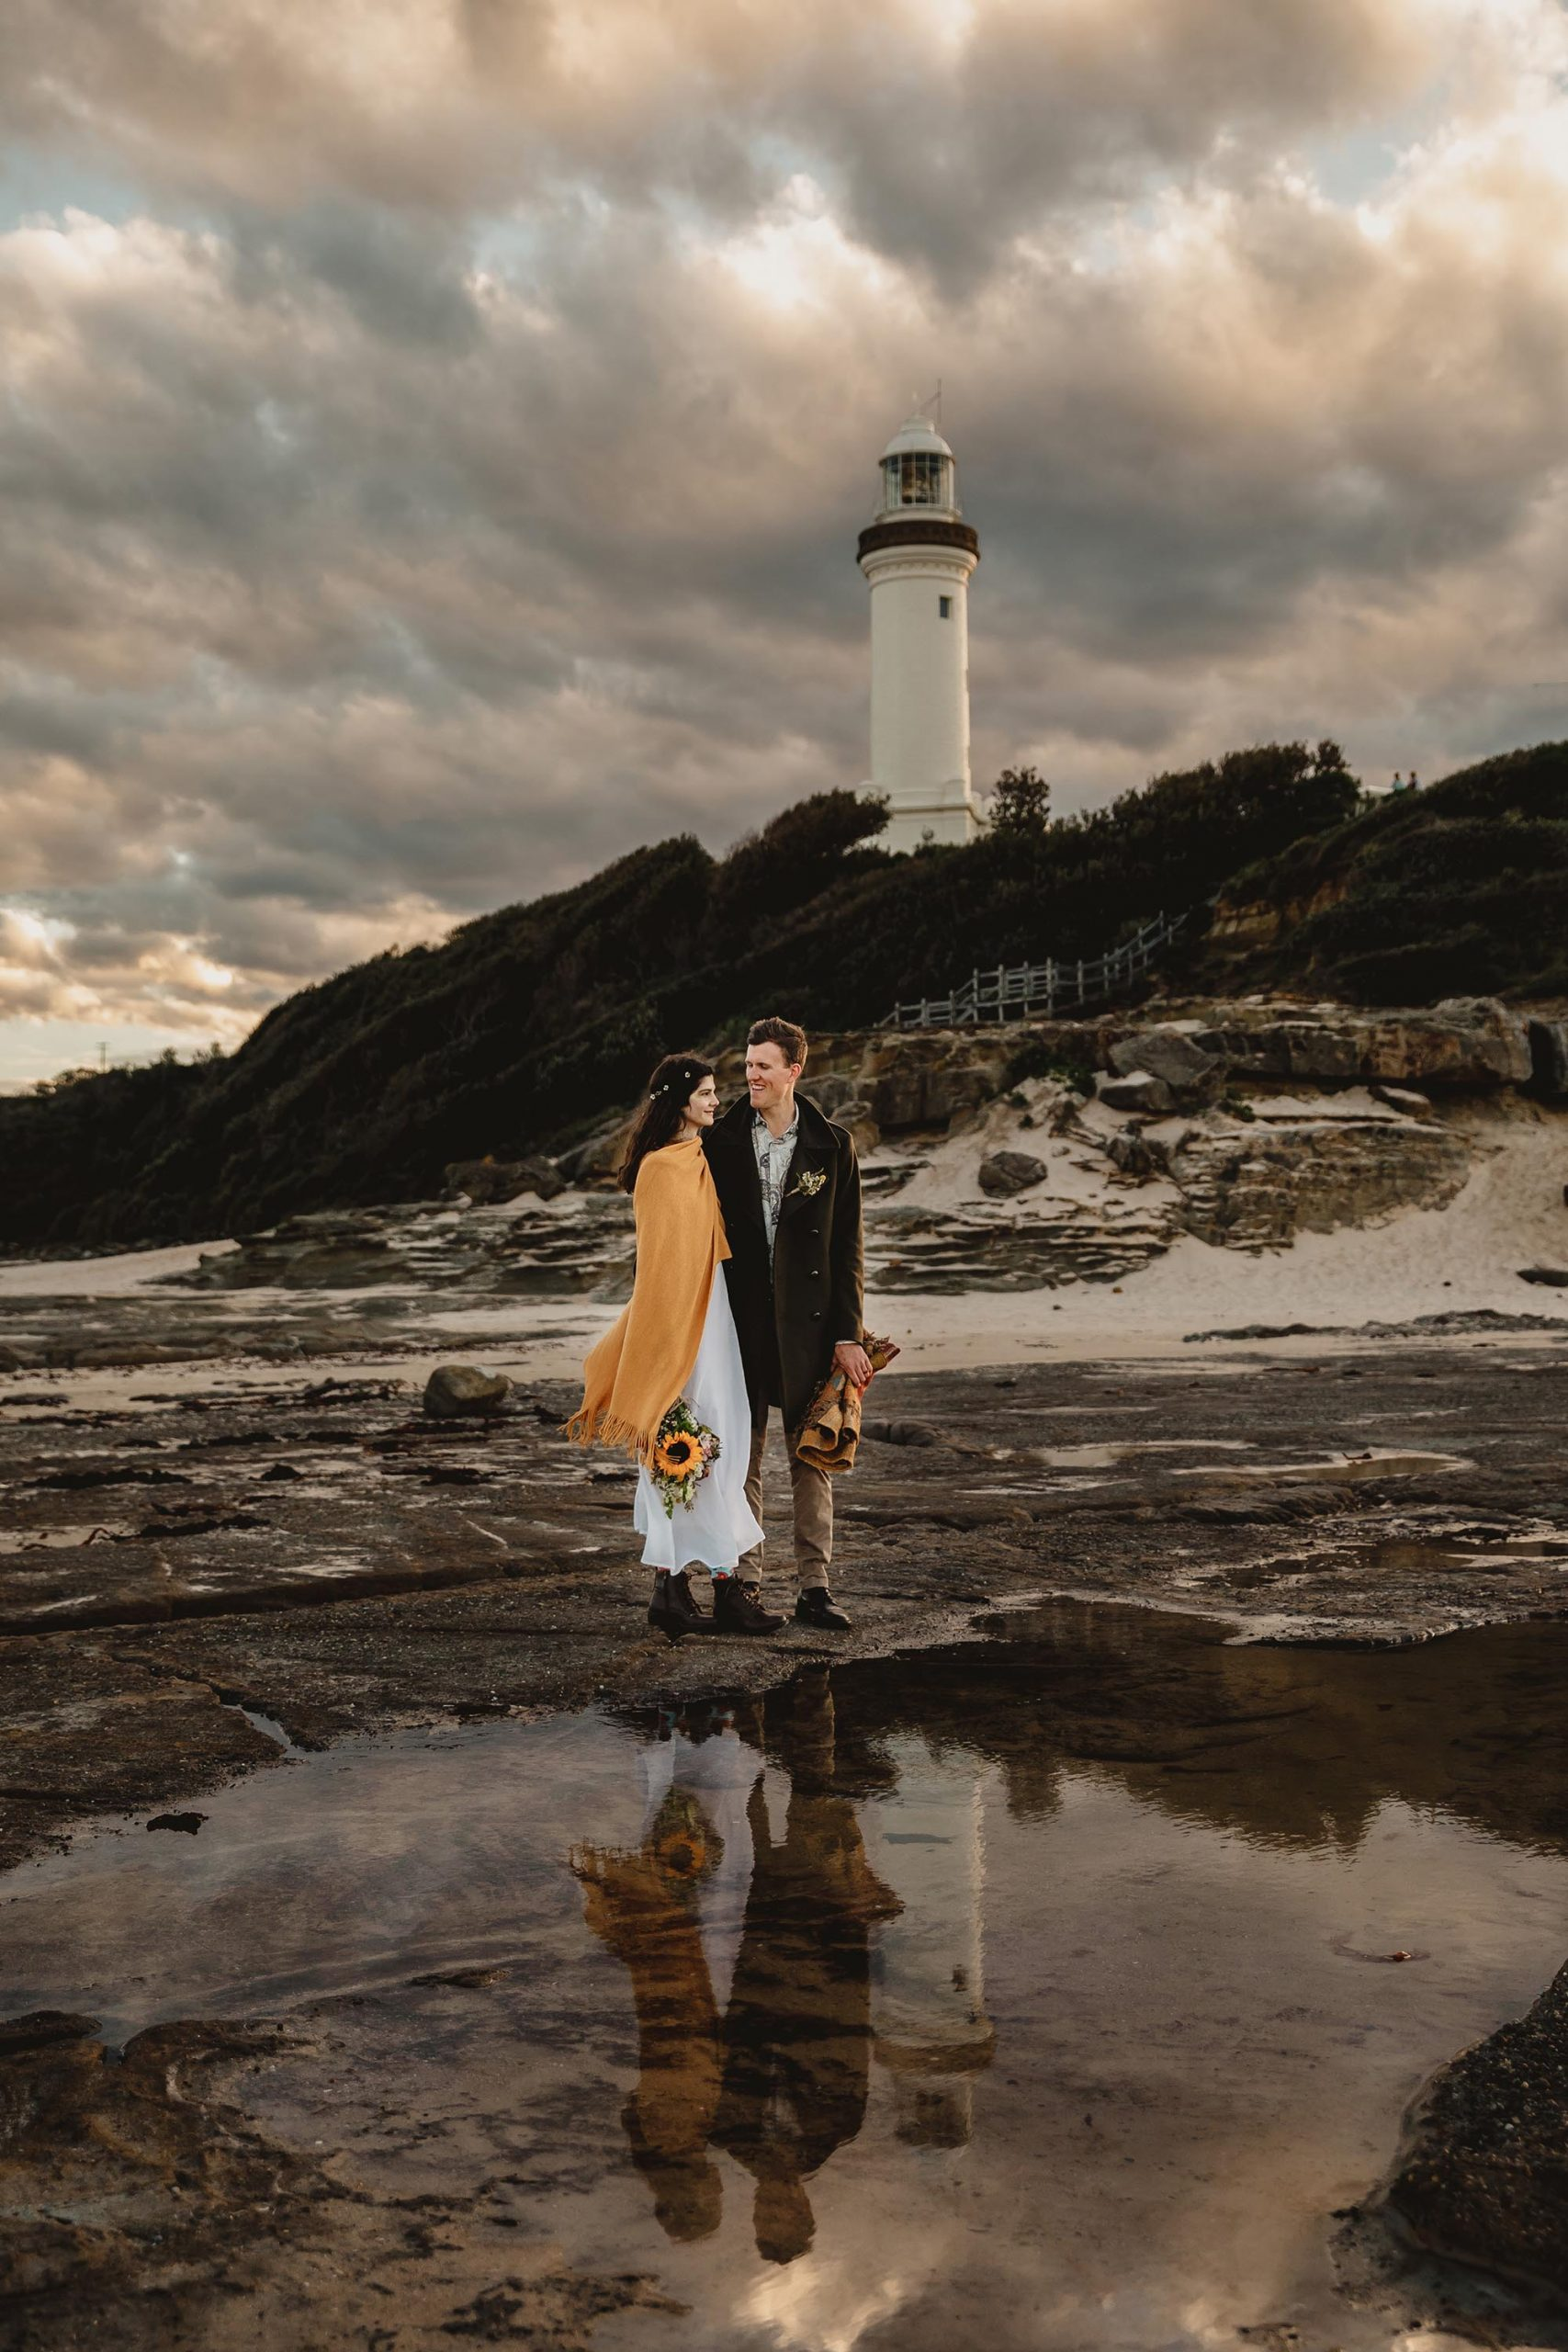 Elopement Packages Australia